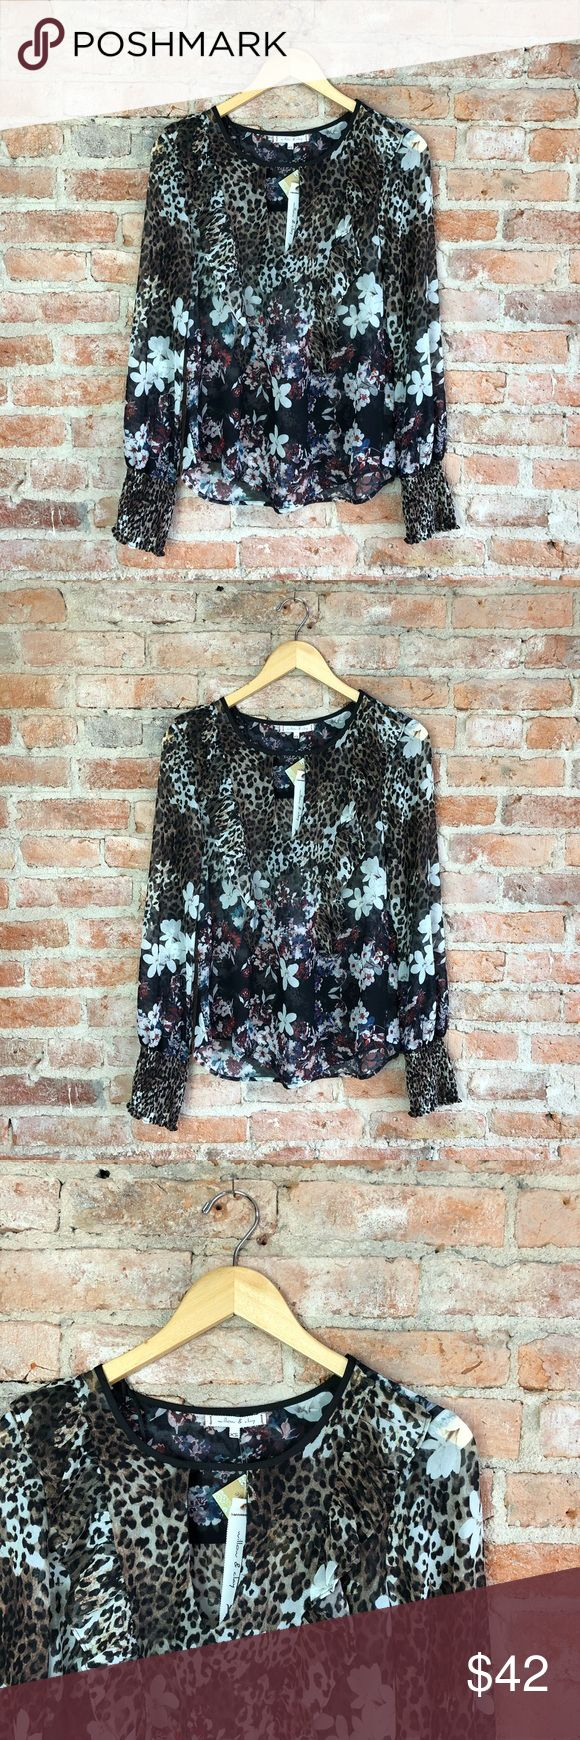 Willow & Clay Leopard and Floral Print Blouse So gorgeous in person. If you're a gal that can get away with a little animal print, this top is for you!  Semi-sheer, so a cami would be required.  Beautiful with black jeans and heels. Willow & Clay Tops Blouses